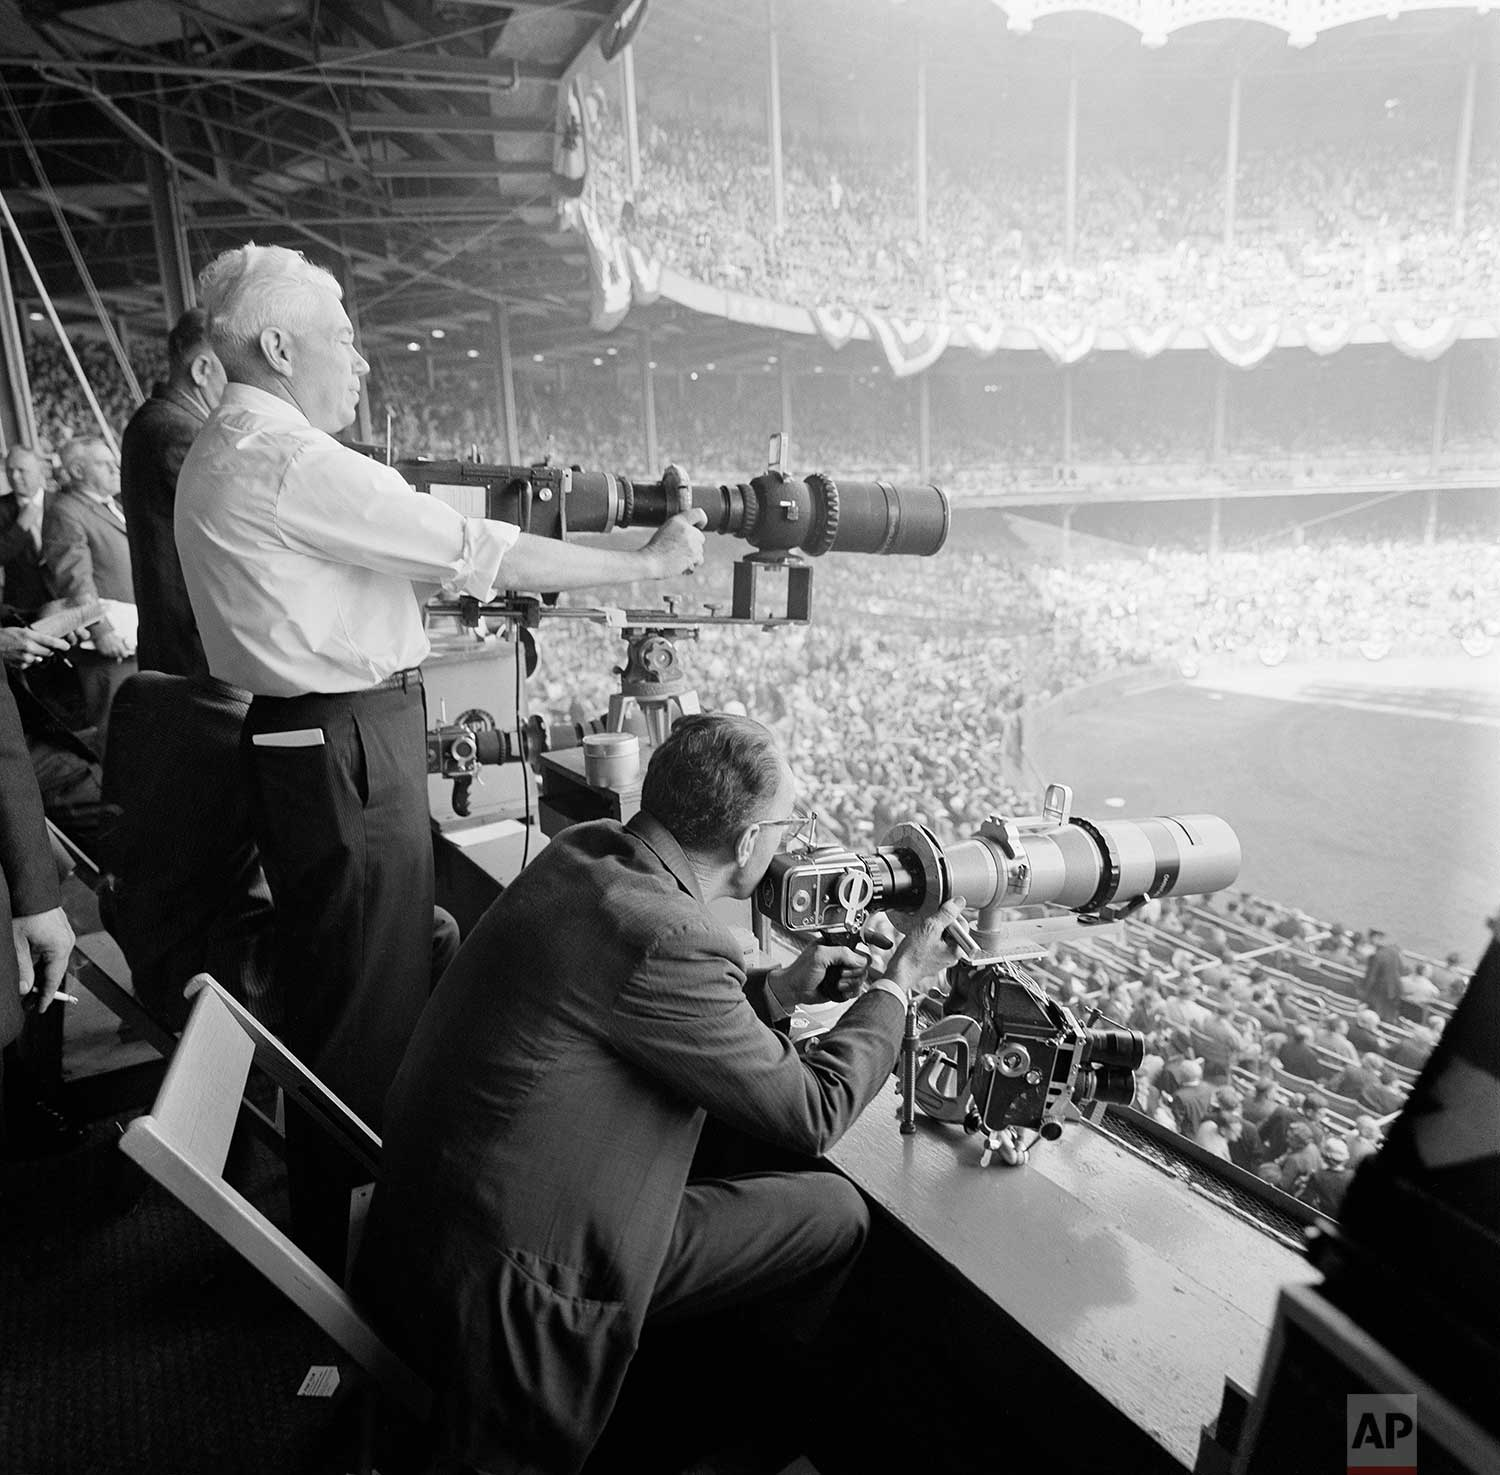 Photographers of The Associated Press are pictured at work in Yankee Stadium in New York, covering the second game of the 1961 World Series between the New York Yankees and the Cincinnati Reds, Oct. 5, 1961. From foreground to background are Harry Harris, John Rooney and Murray Becker. (AP Photo)